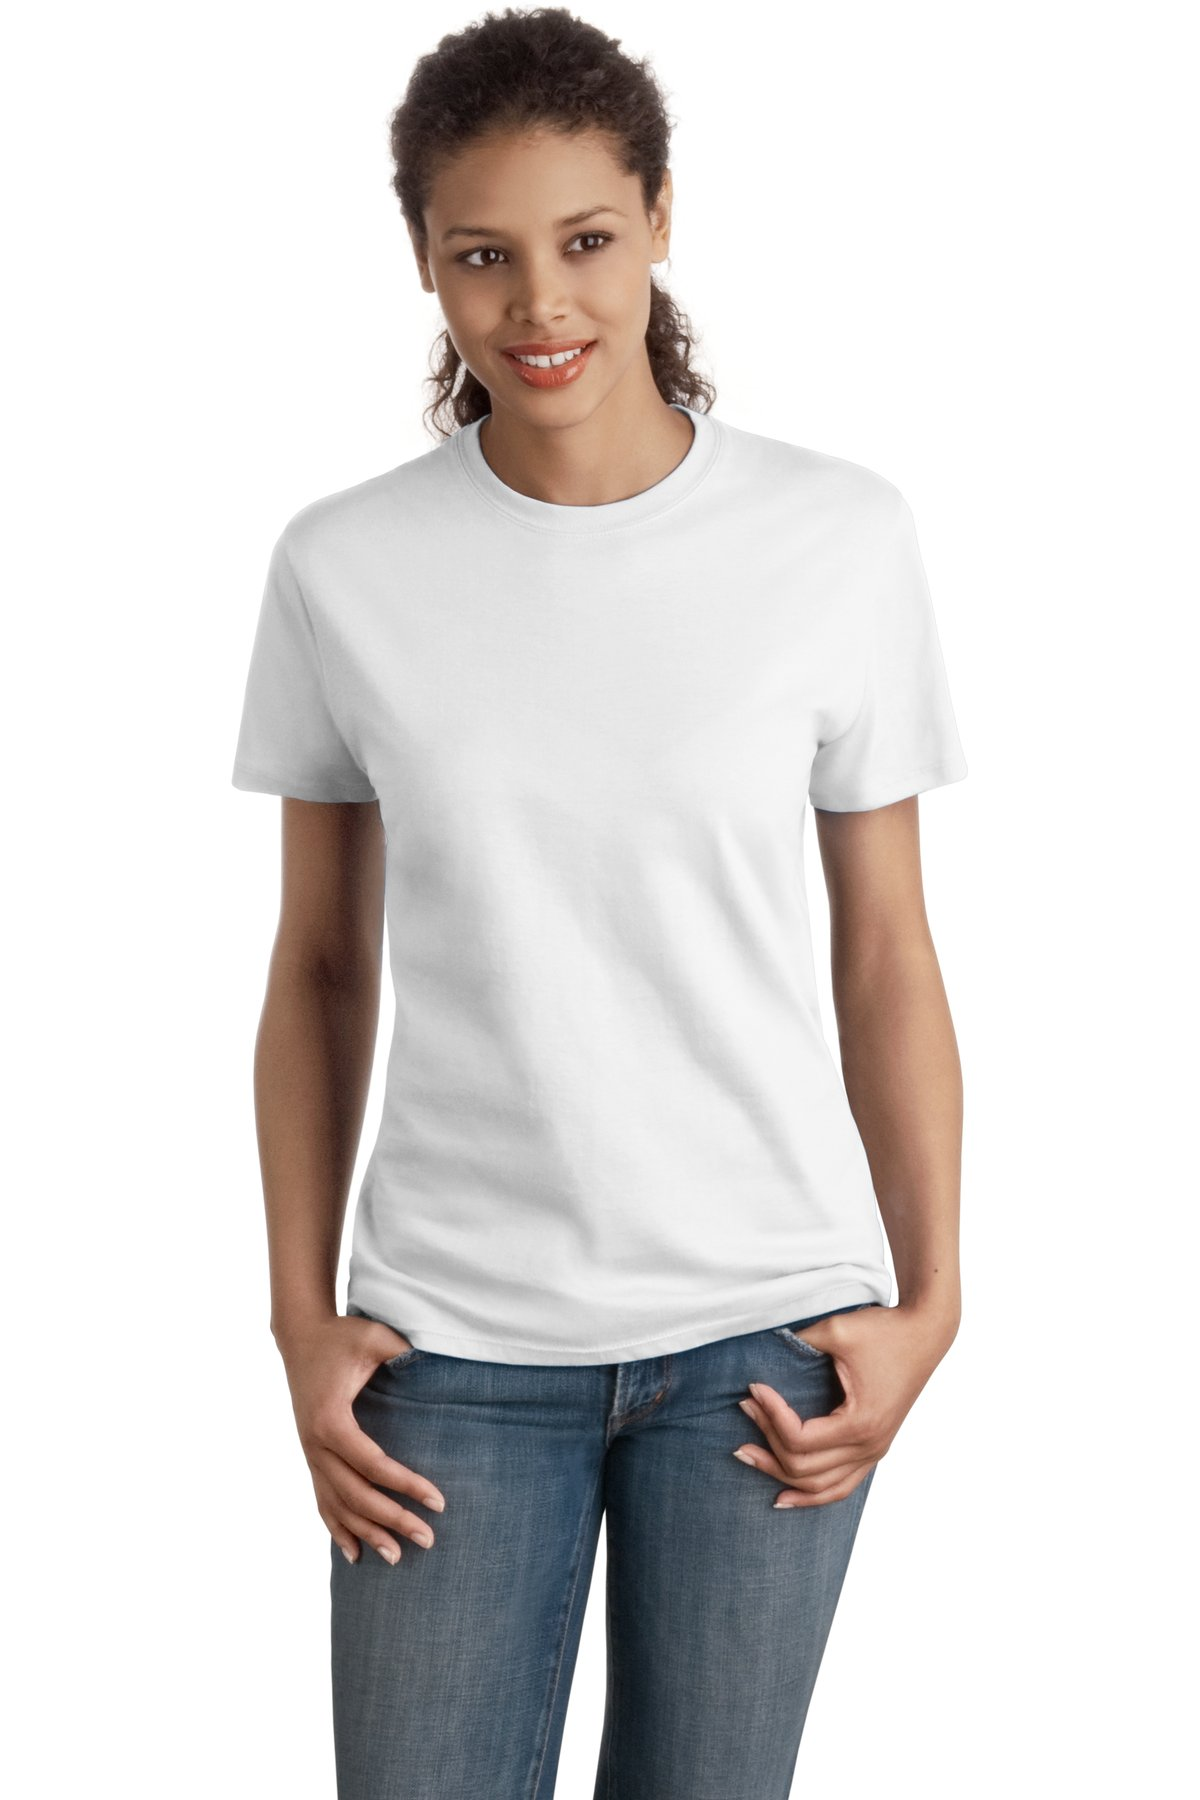 Hanes Ladies Nano T Cotton T Shirt Sl04 My Deals Llc